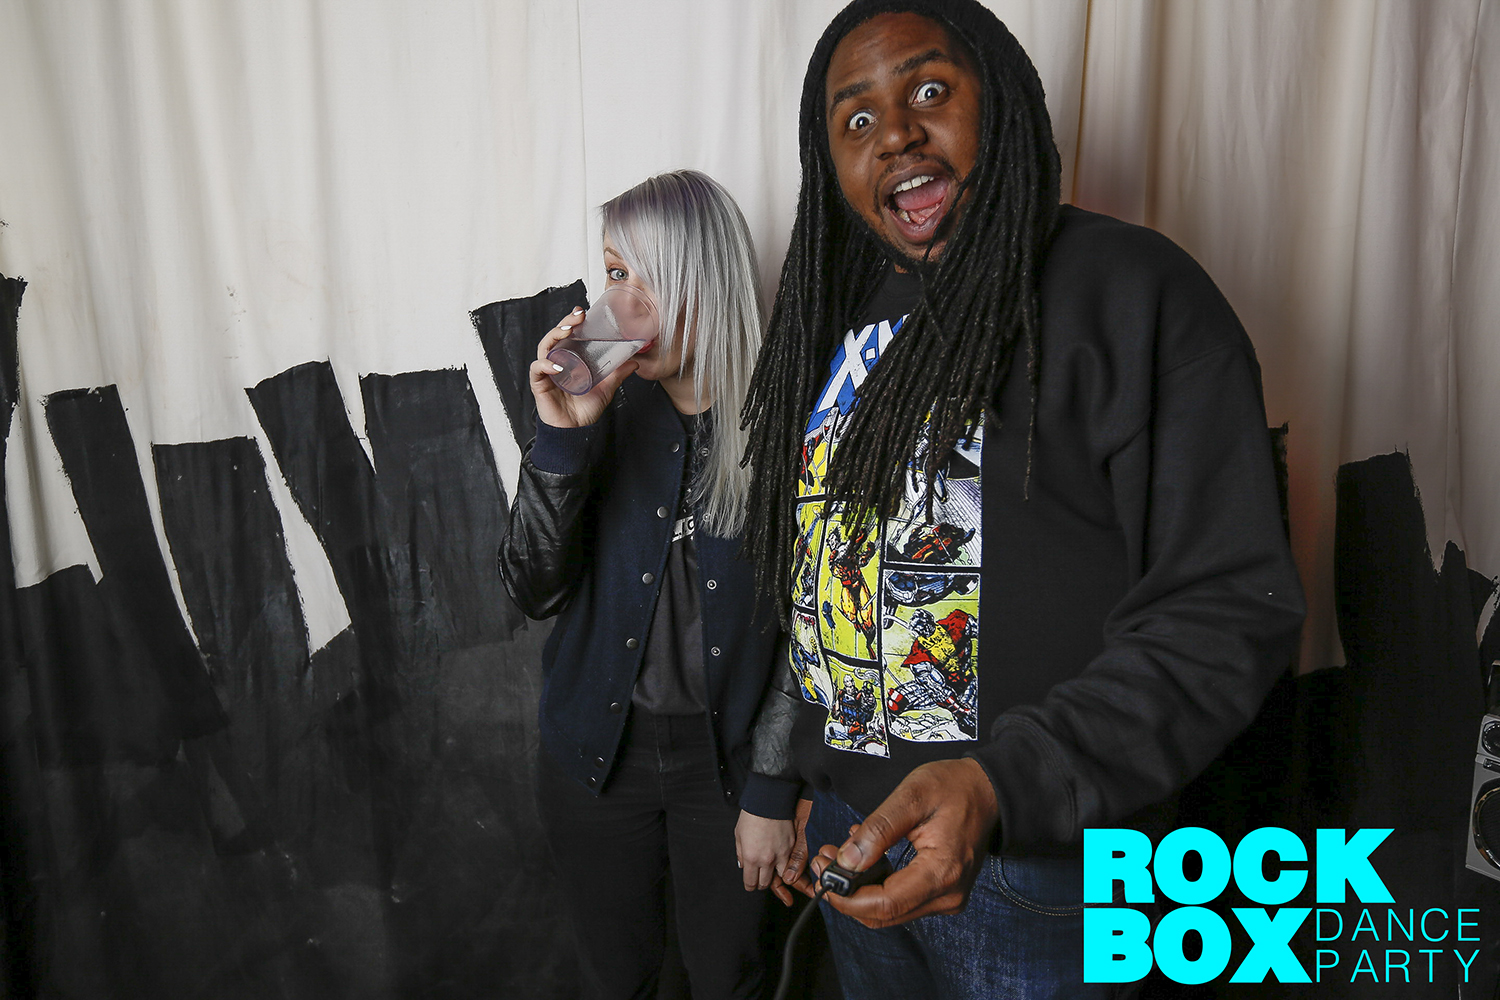 Rock box feb 2015-0017.jpg